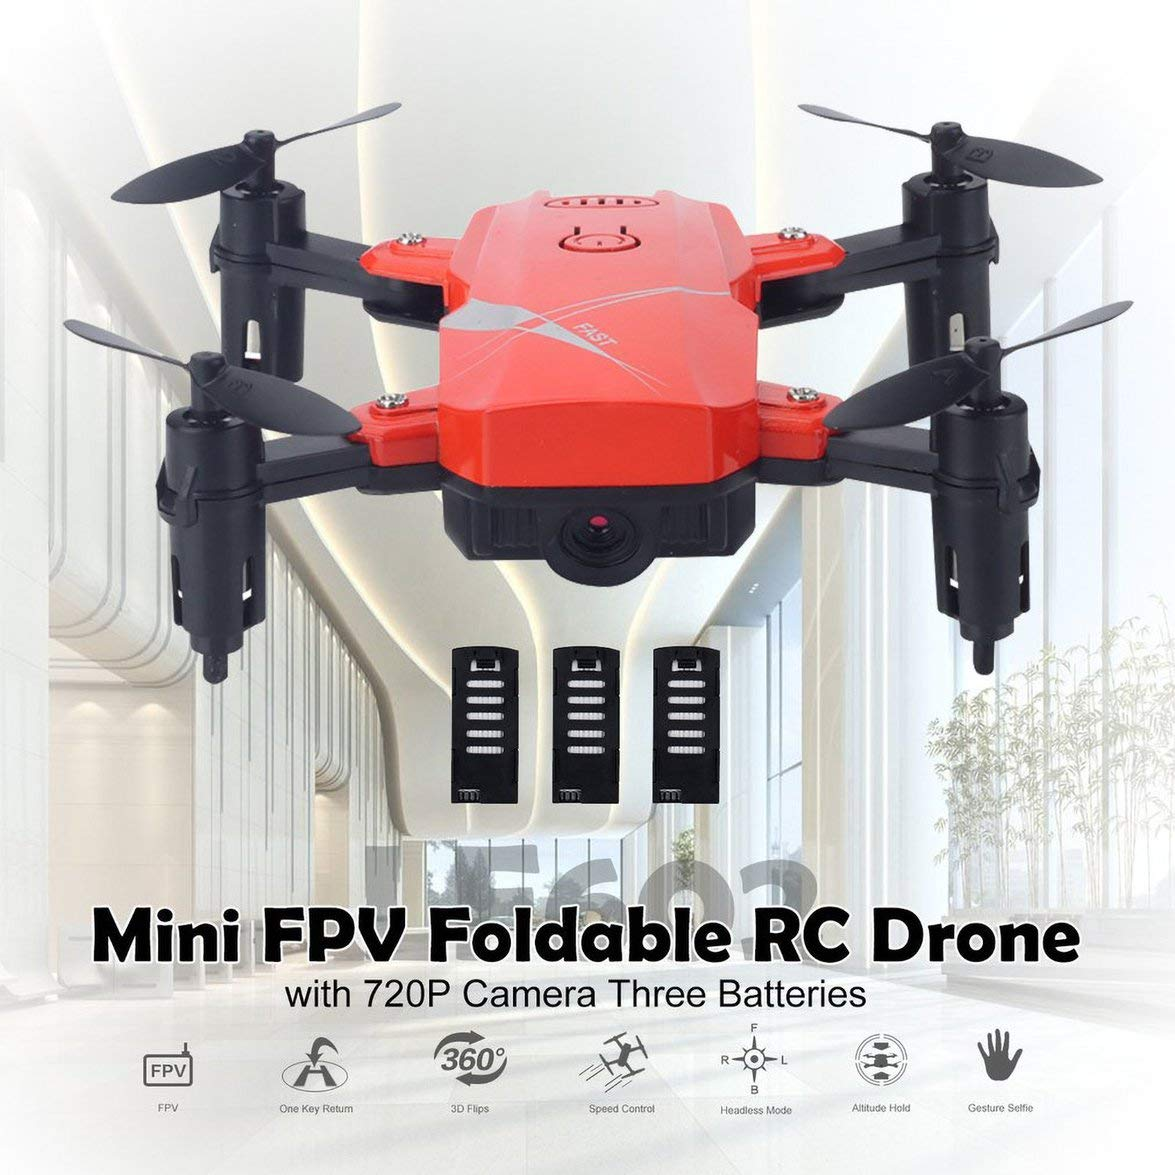 Kongqiabona LF602 2.4G Mini FPV Foldable RC Quadcopter Drone ...